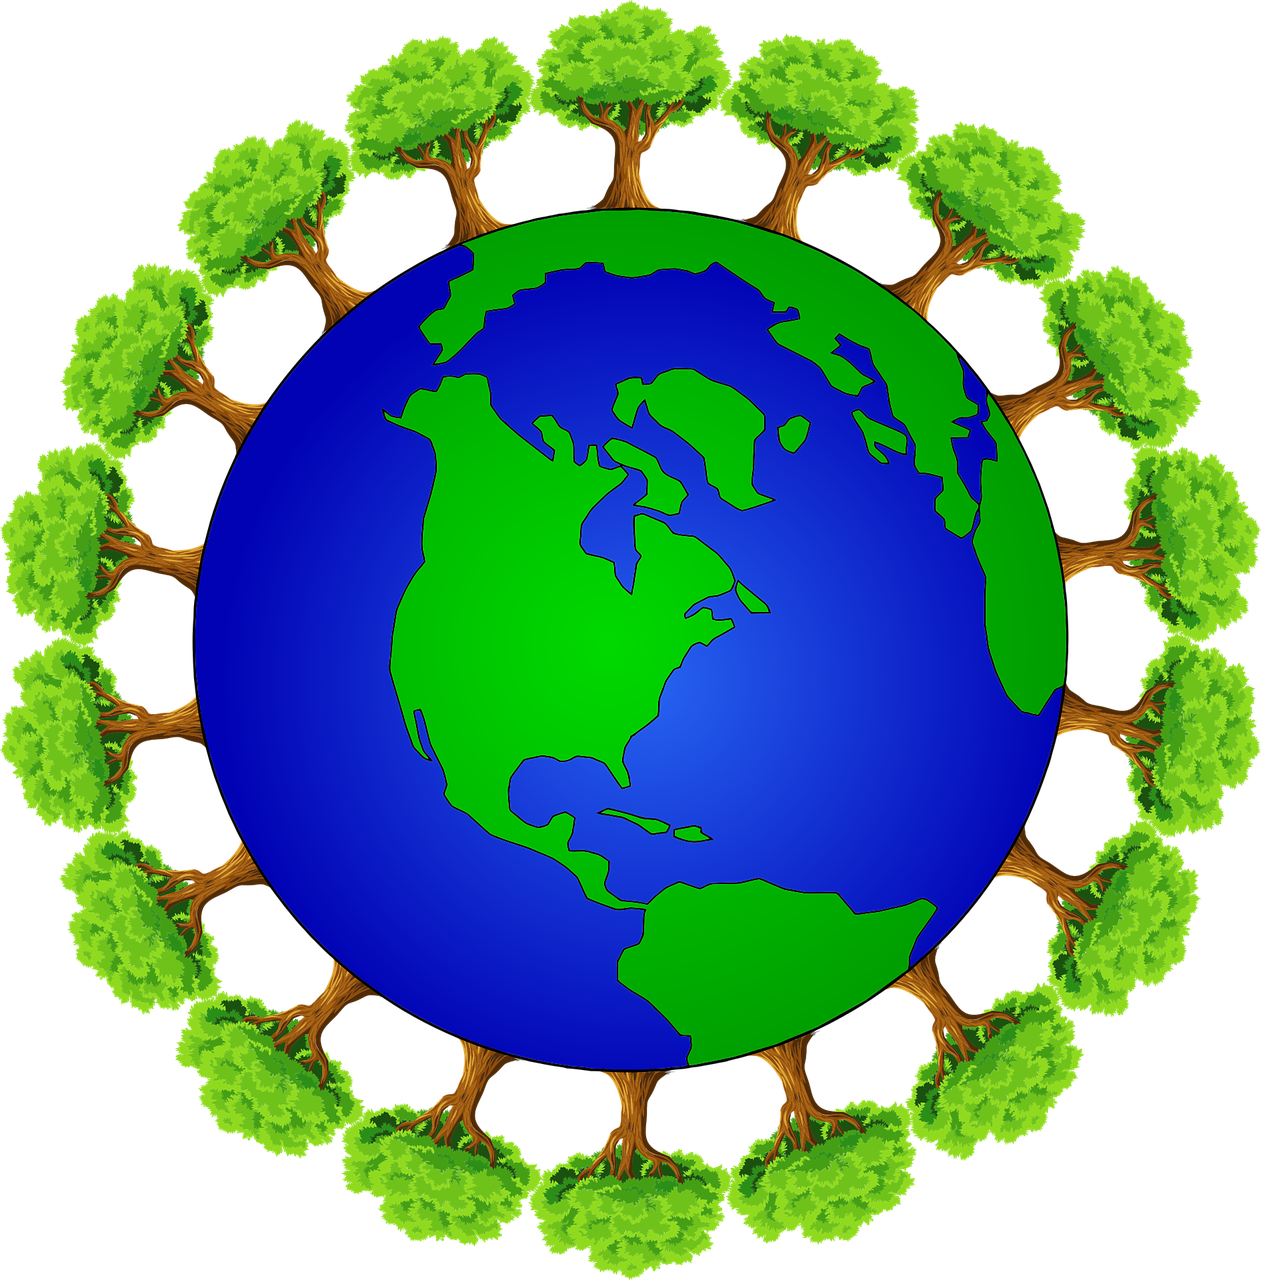 1% for the planet | We're collaborating to reforest the earth